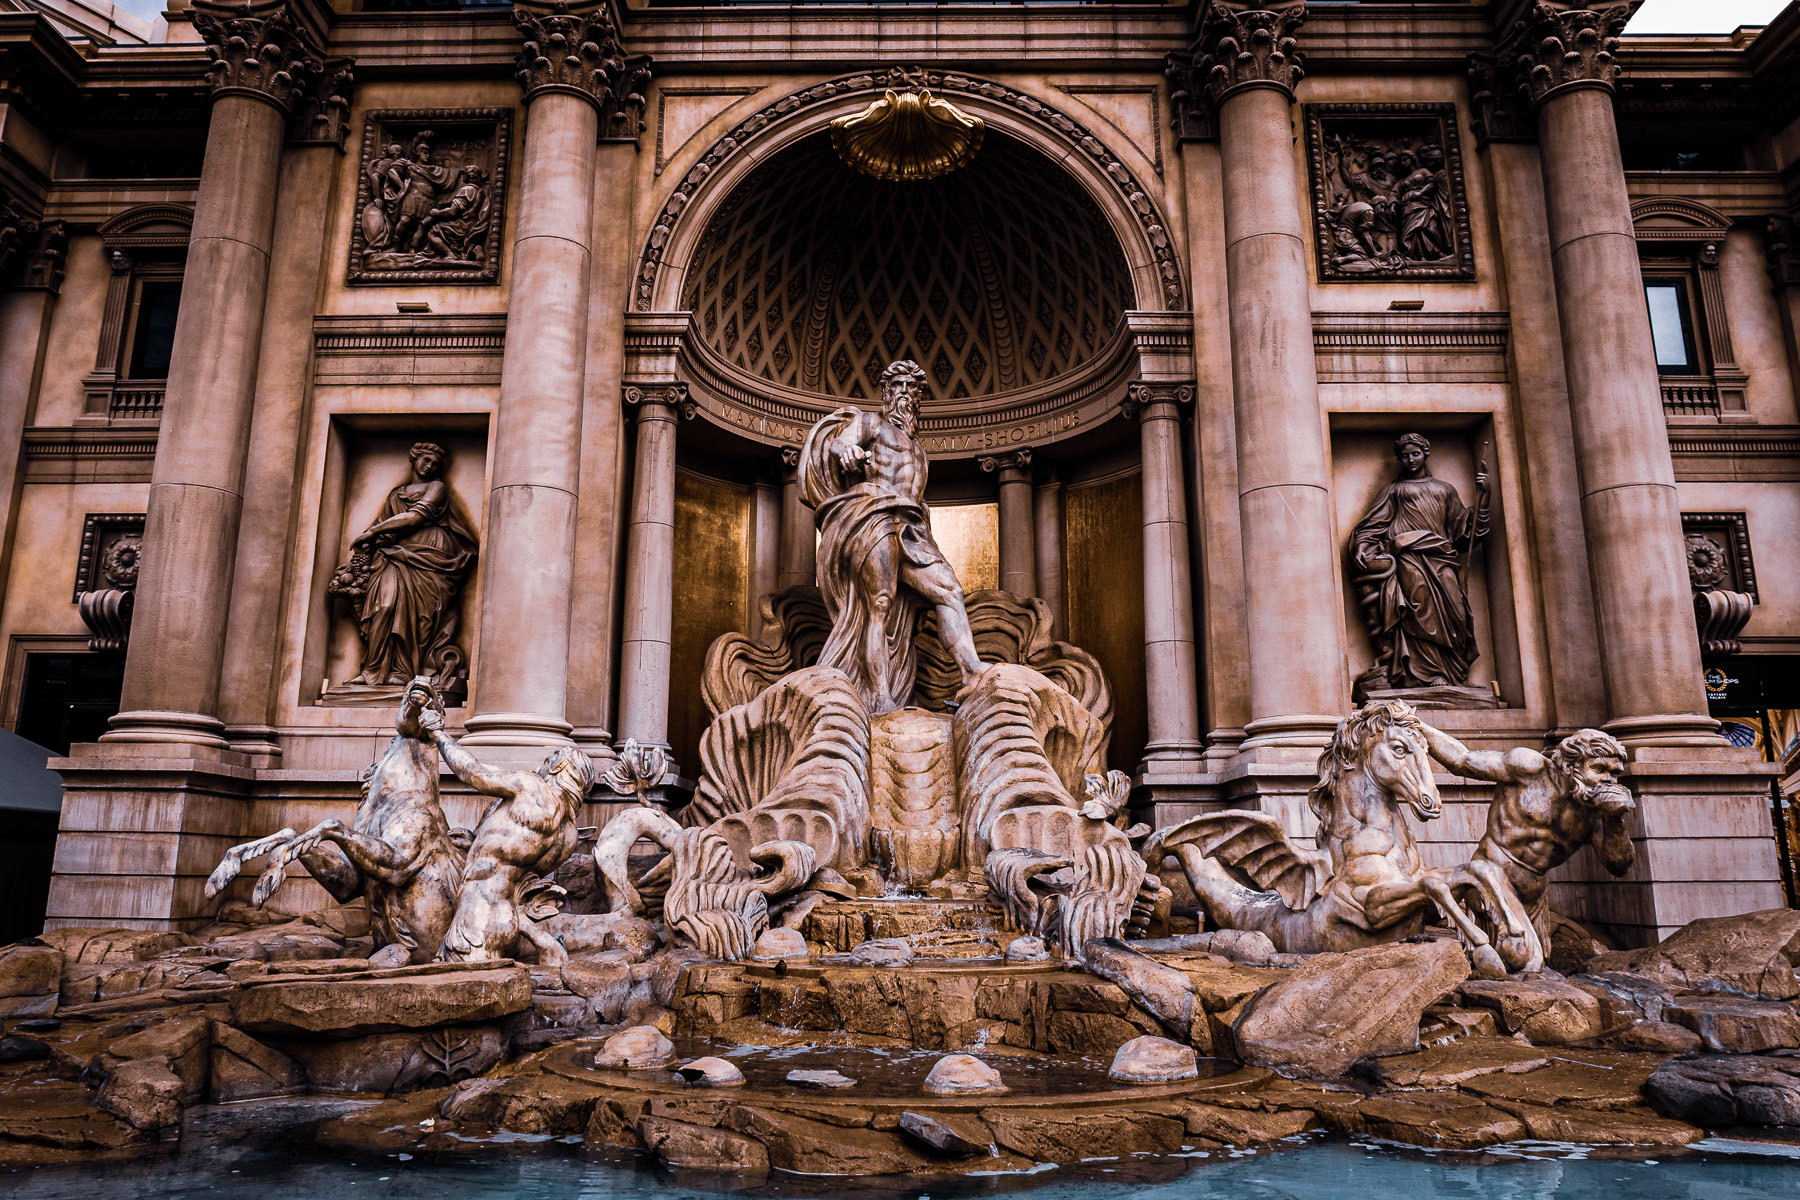 The Roman god of the sea, Neptune, stands in a replica of Rome's Trevi Fountain at Caesars Palace, Las Vegas.